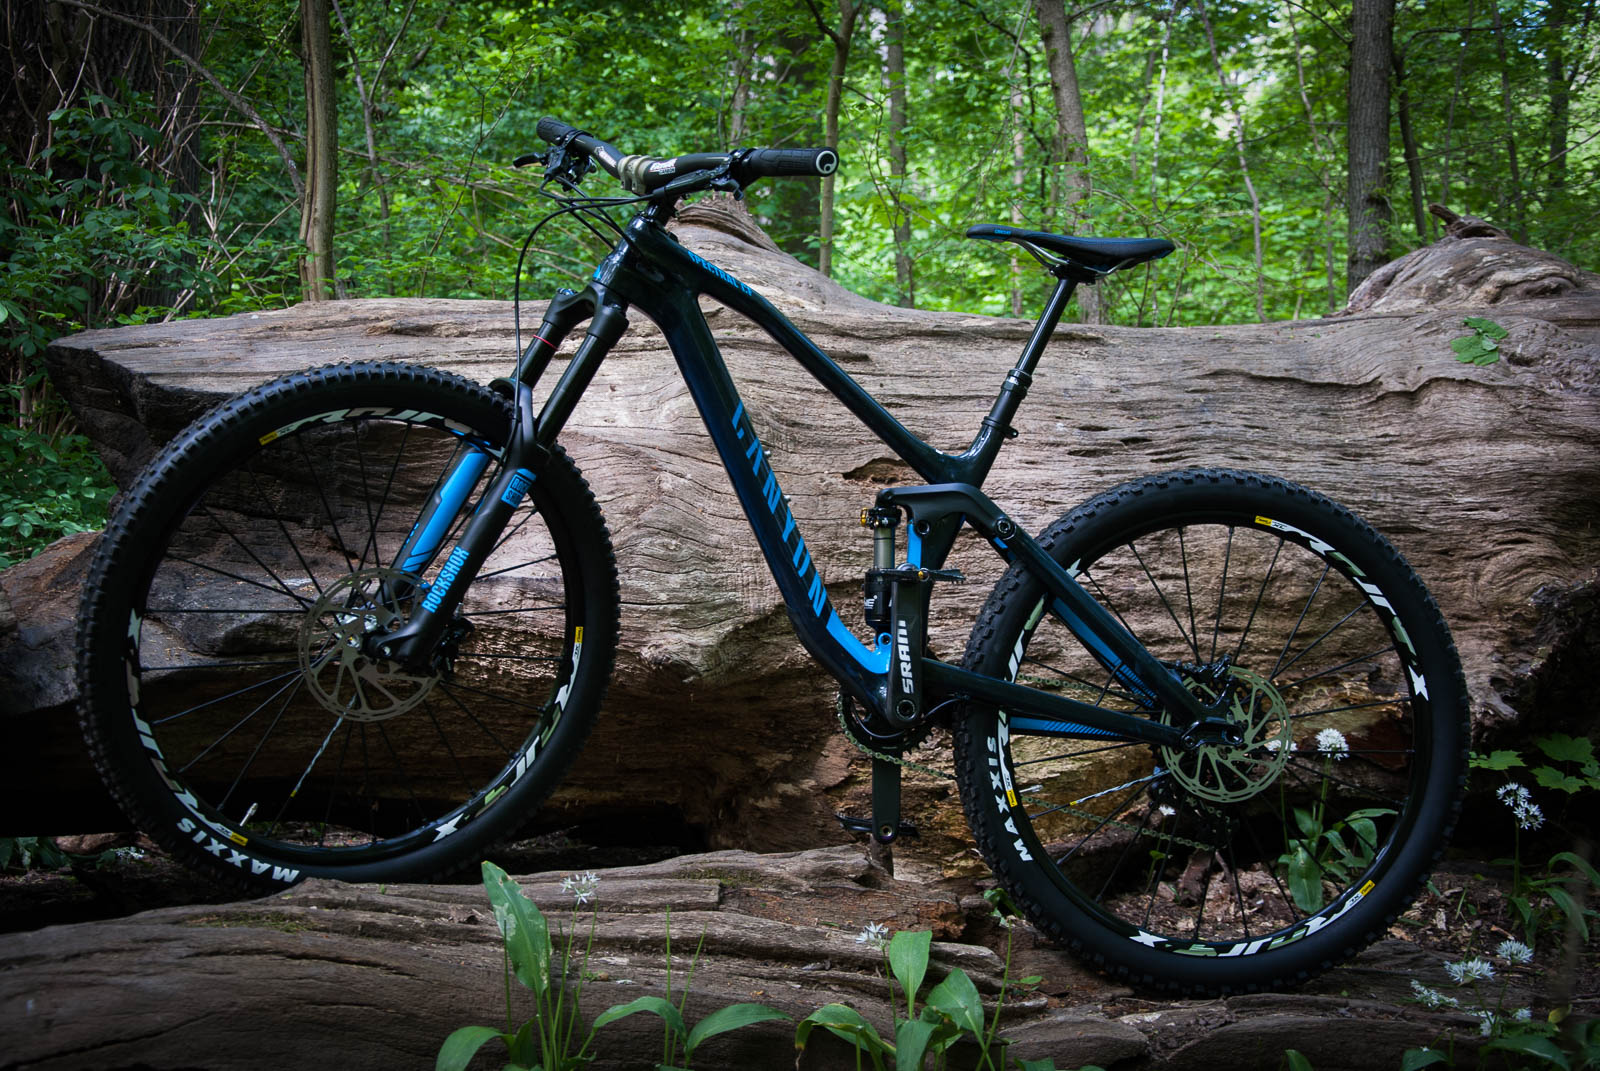 Canyon Spectral CF 9.0 EX © Christopher Marx